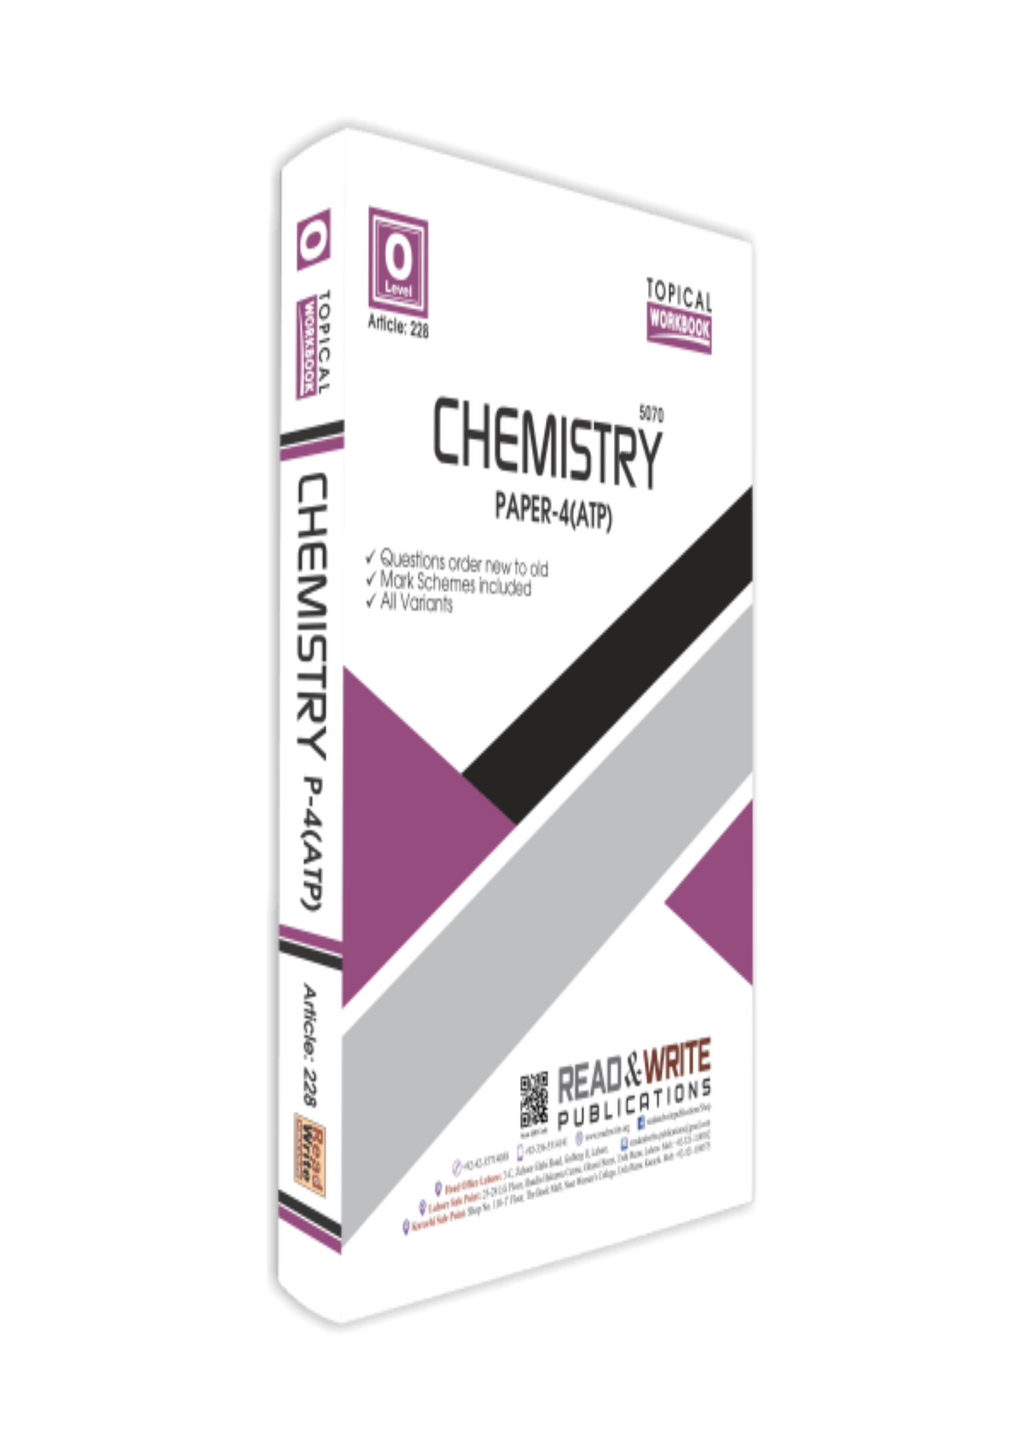 Cambridge O-Level Chemistry (5070) P-4 ATP (Topical) Worked by Editorial Board R&W 228